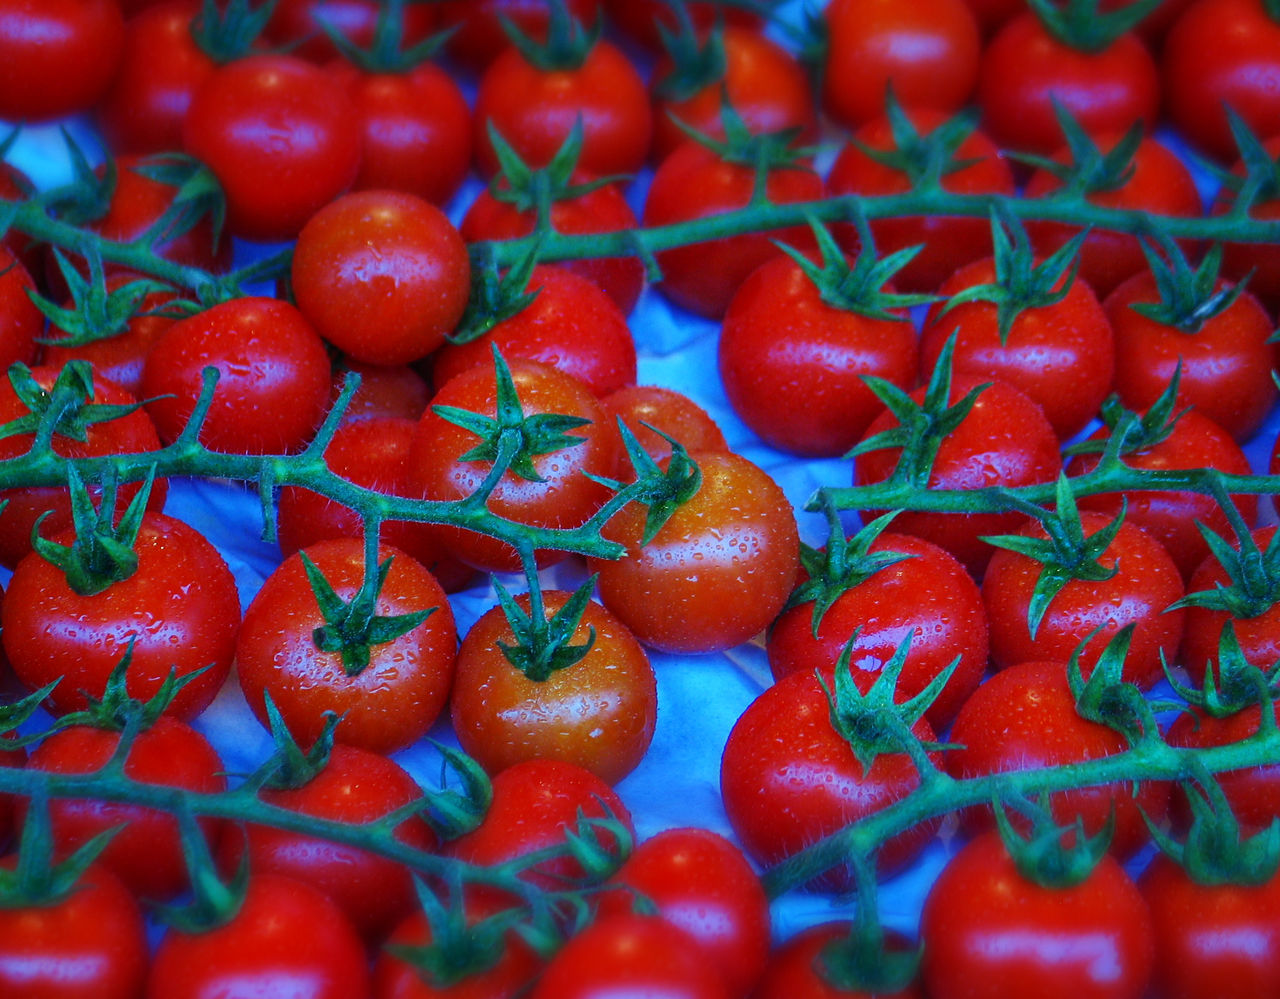 red, food and drink, food, fruit, freshness, healthy eating, wellbeing, full frame, backgrounds, close-up, vegetable, no people, still life, tomato, large group of objects, abundance, indoors, selective focus, for sale, market, ripe